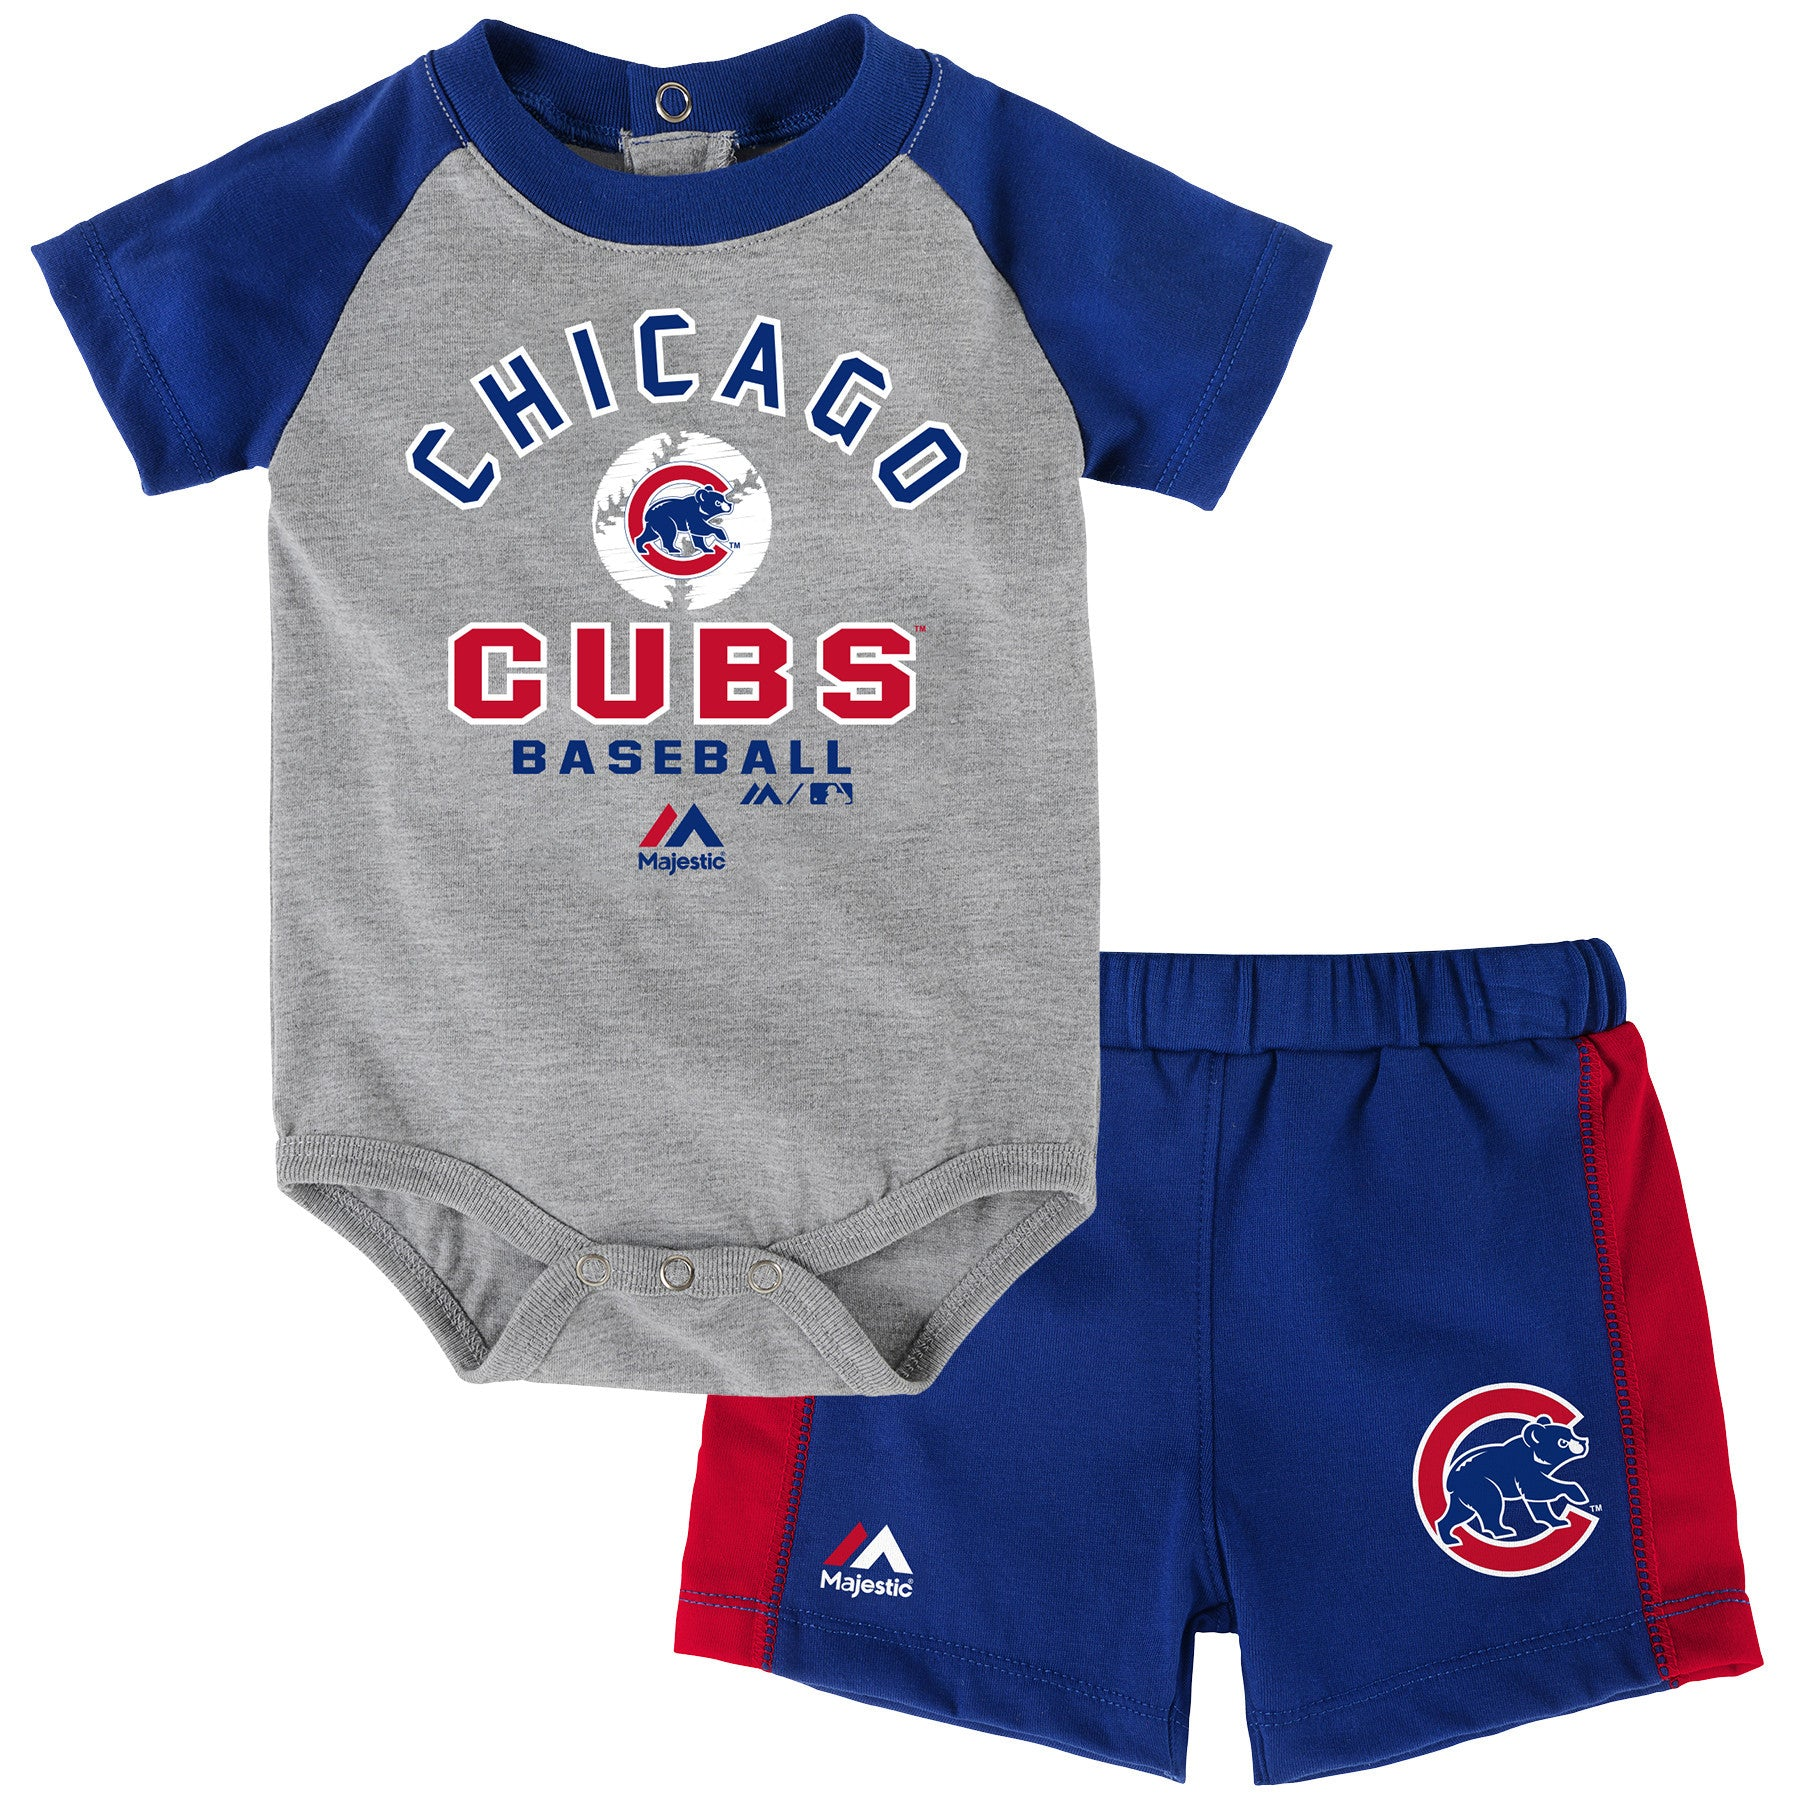 Cubs Baby Classic Bodysuit with Shorts Set – babyfans